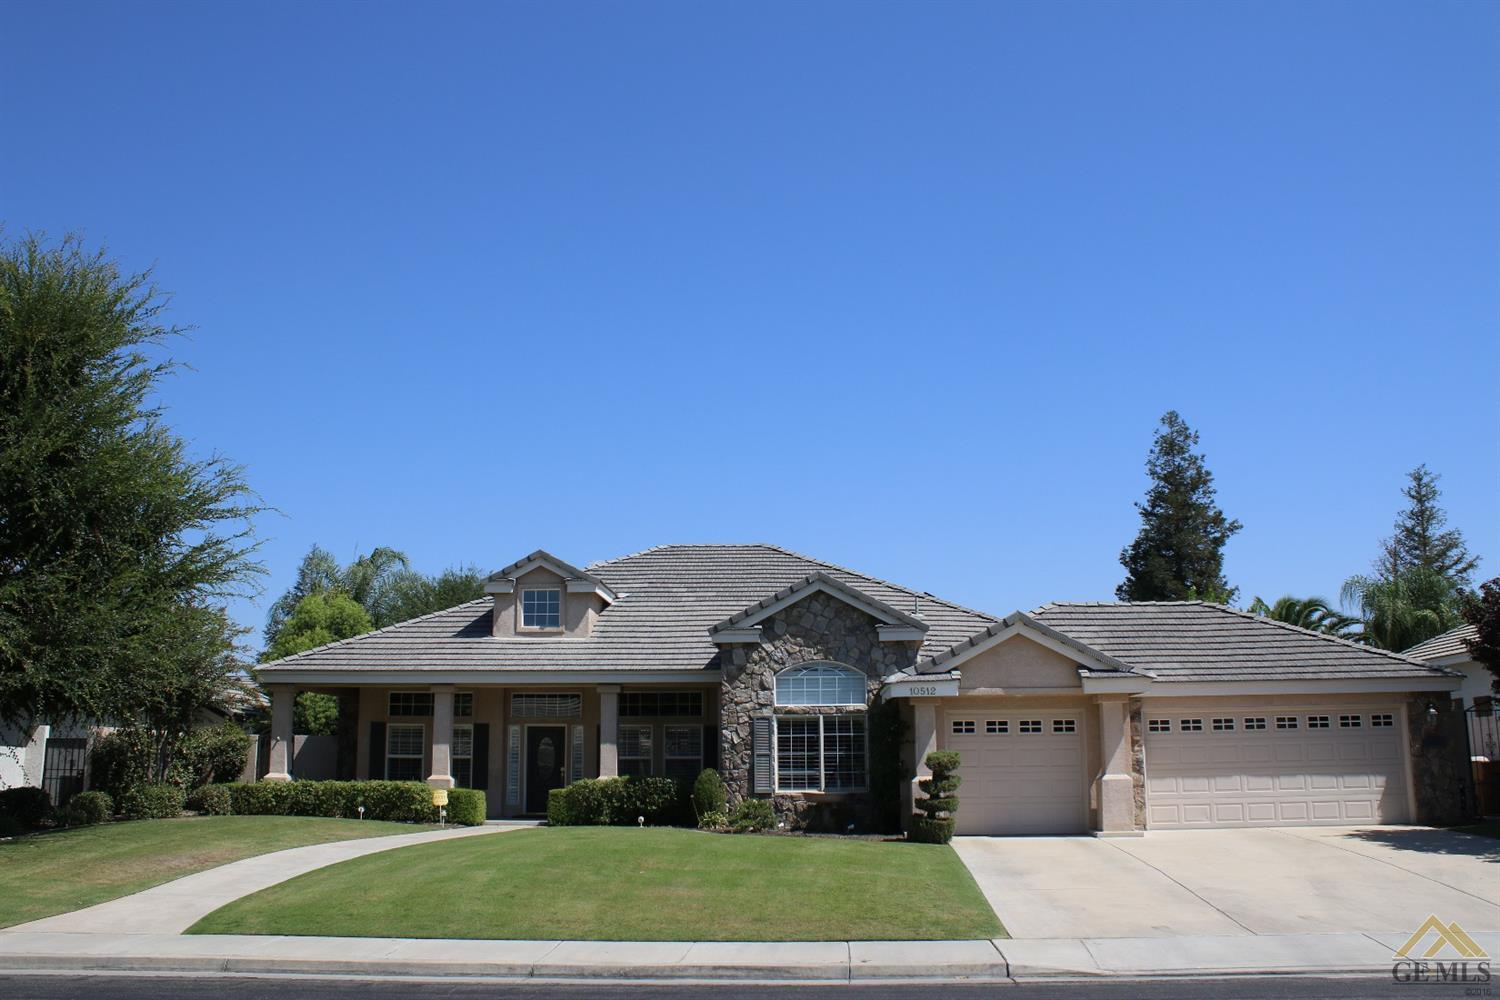 10512 Finchley Dr, Bakersfield, CA 93311